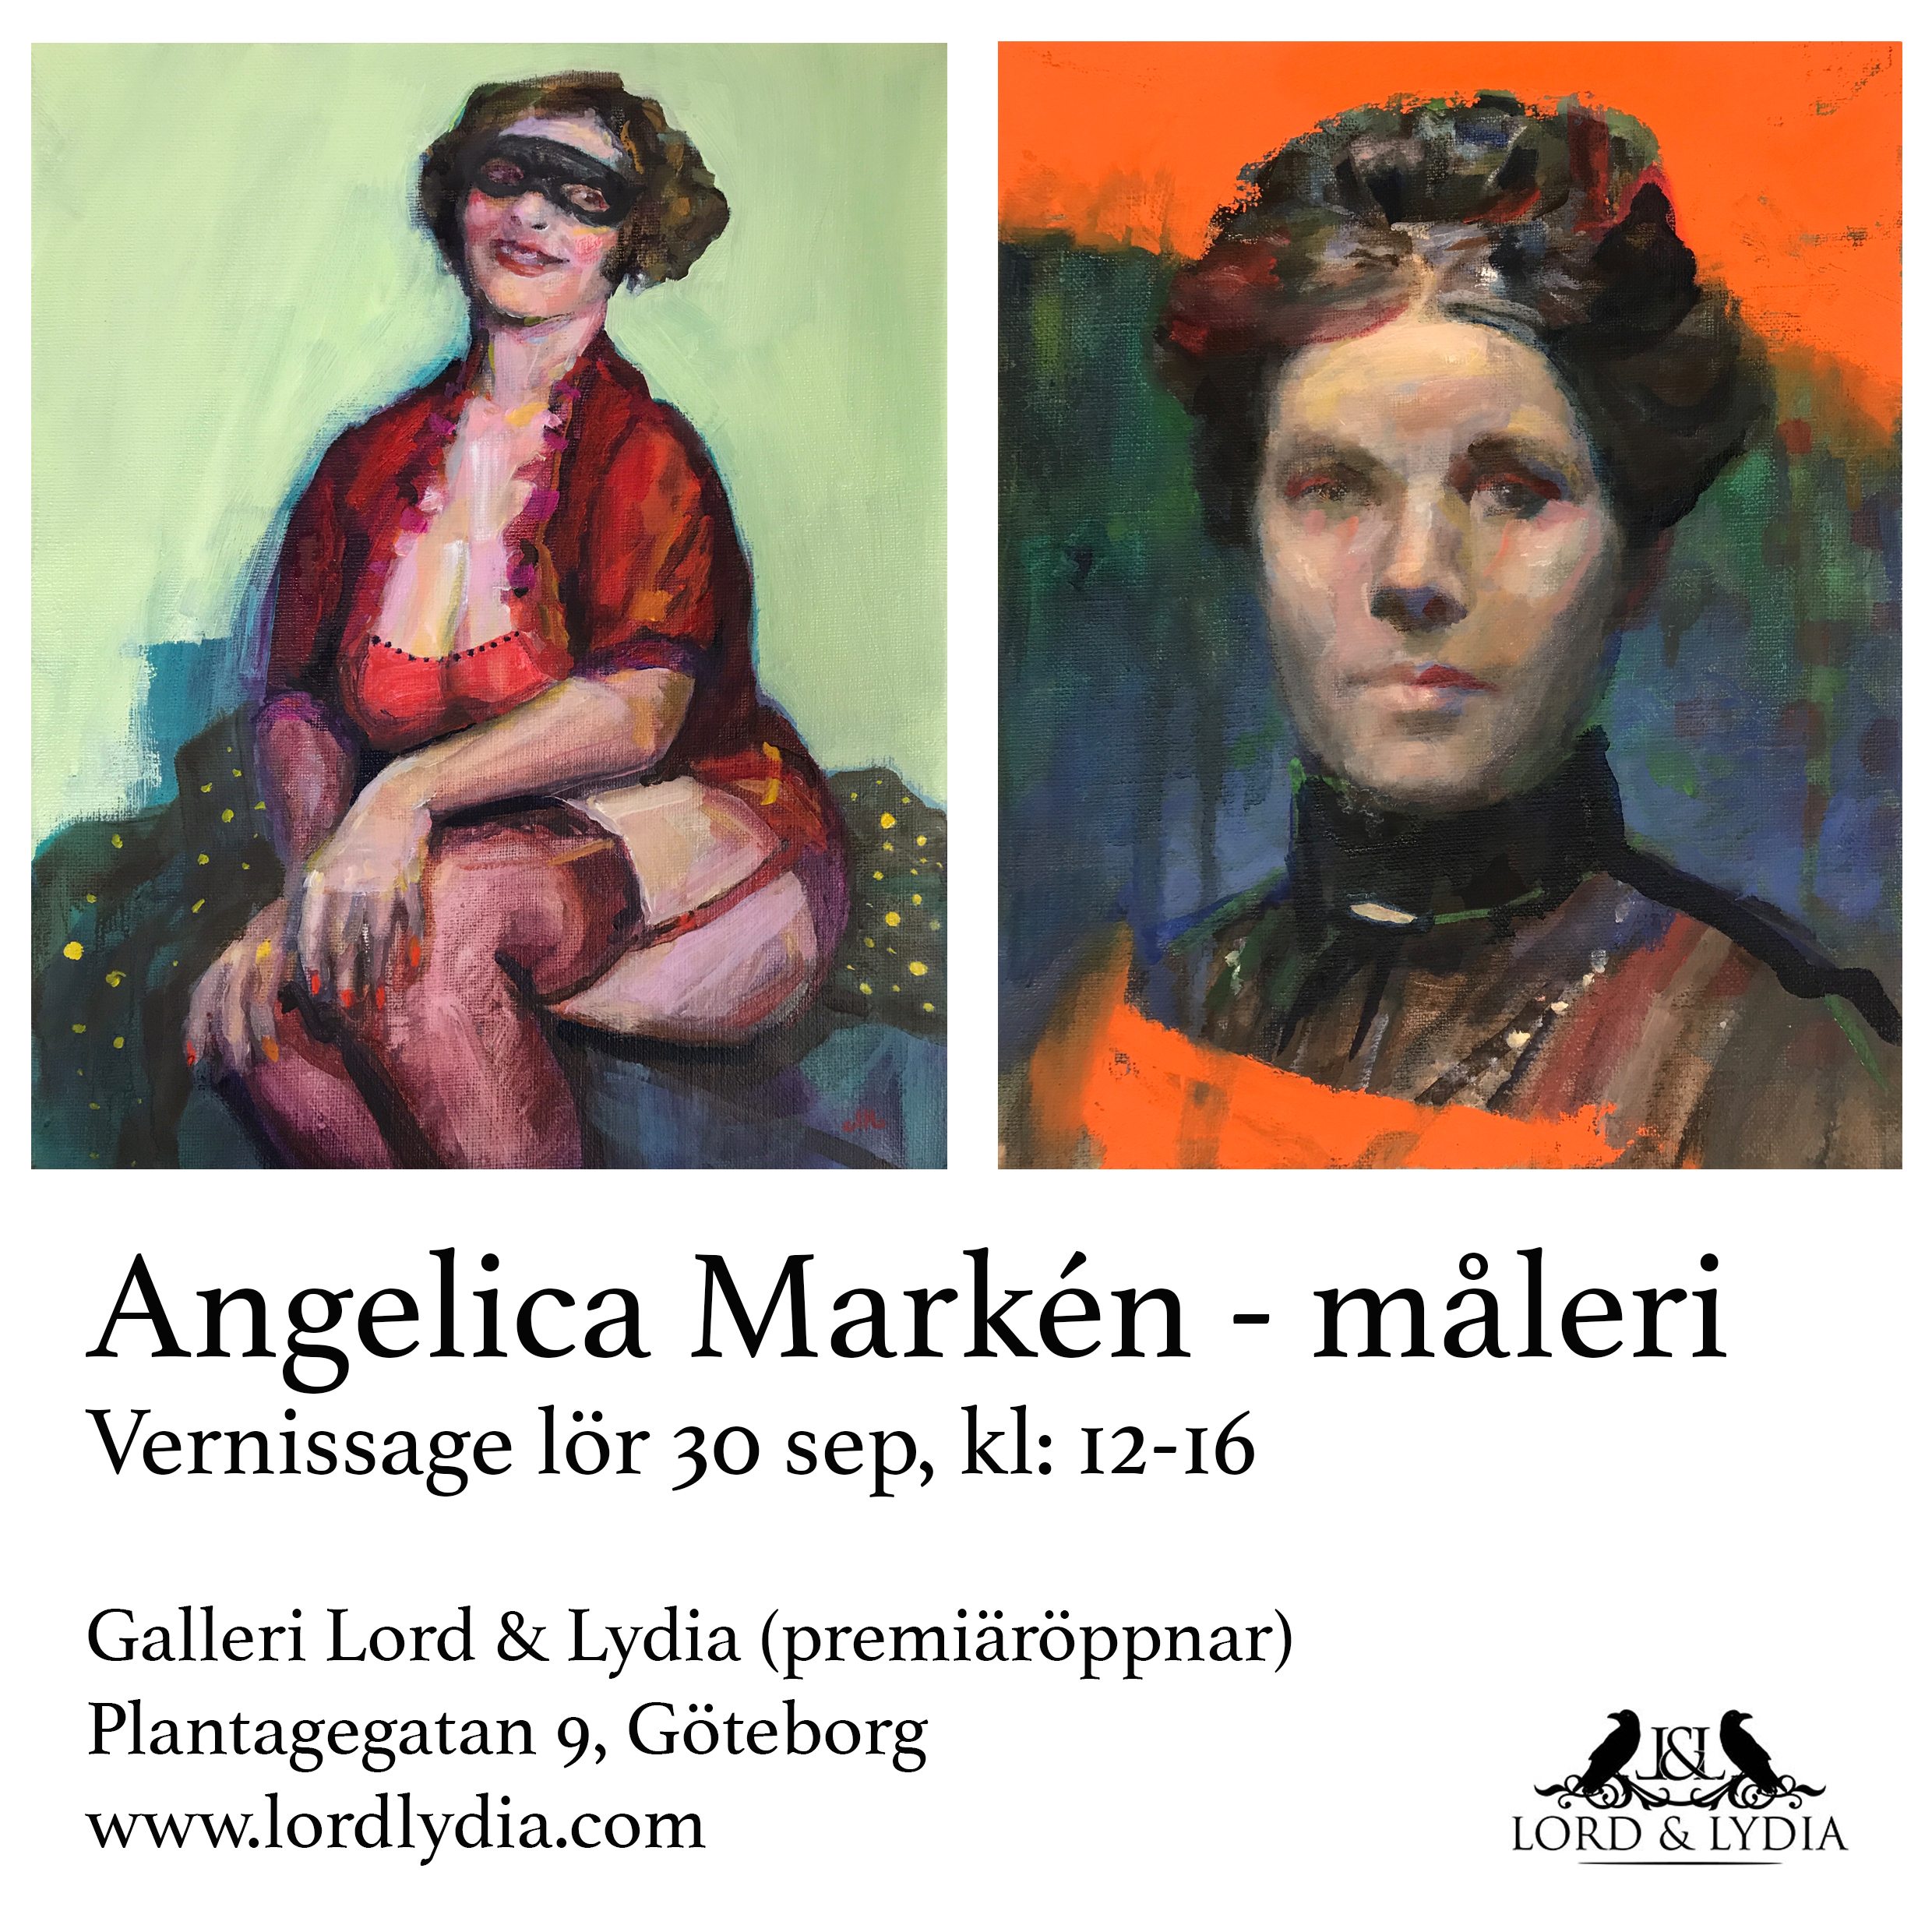 vernissagekort angelica markén lordlydia